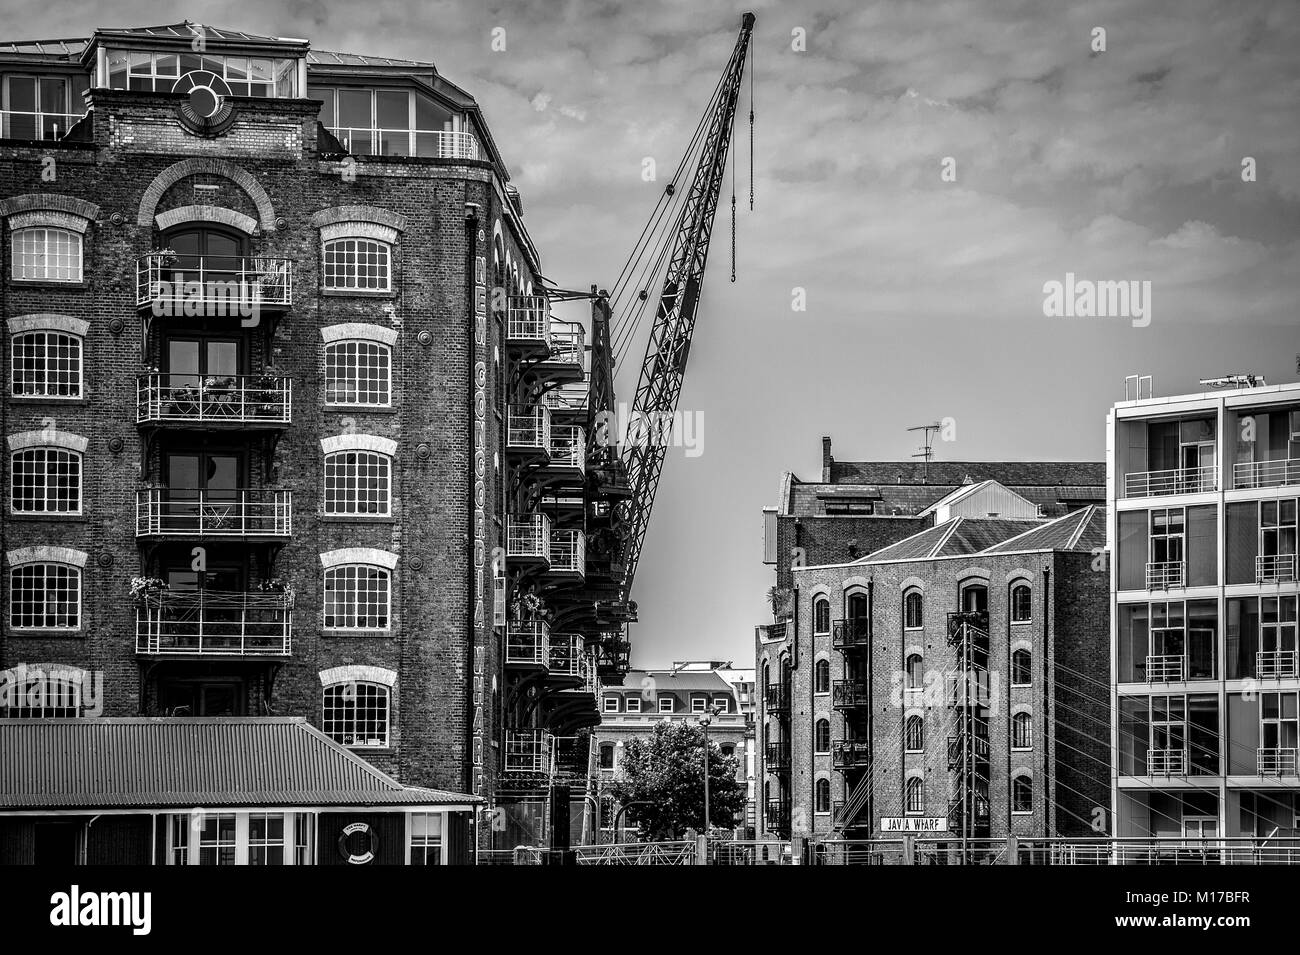 Restored & converted warehousing to residential apartments, Docklands London - Stock Image